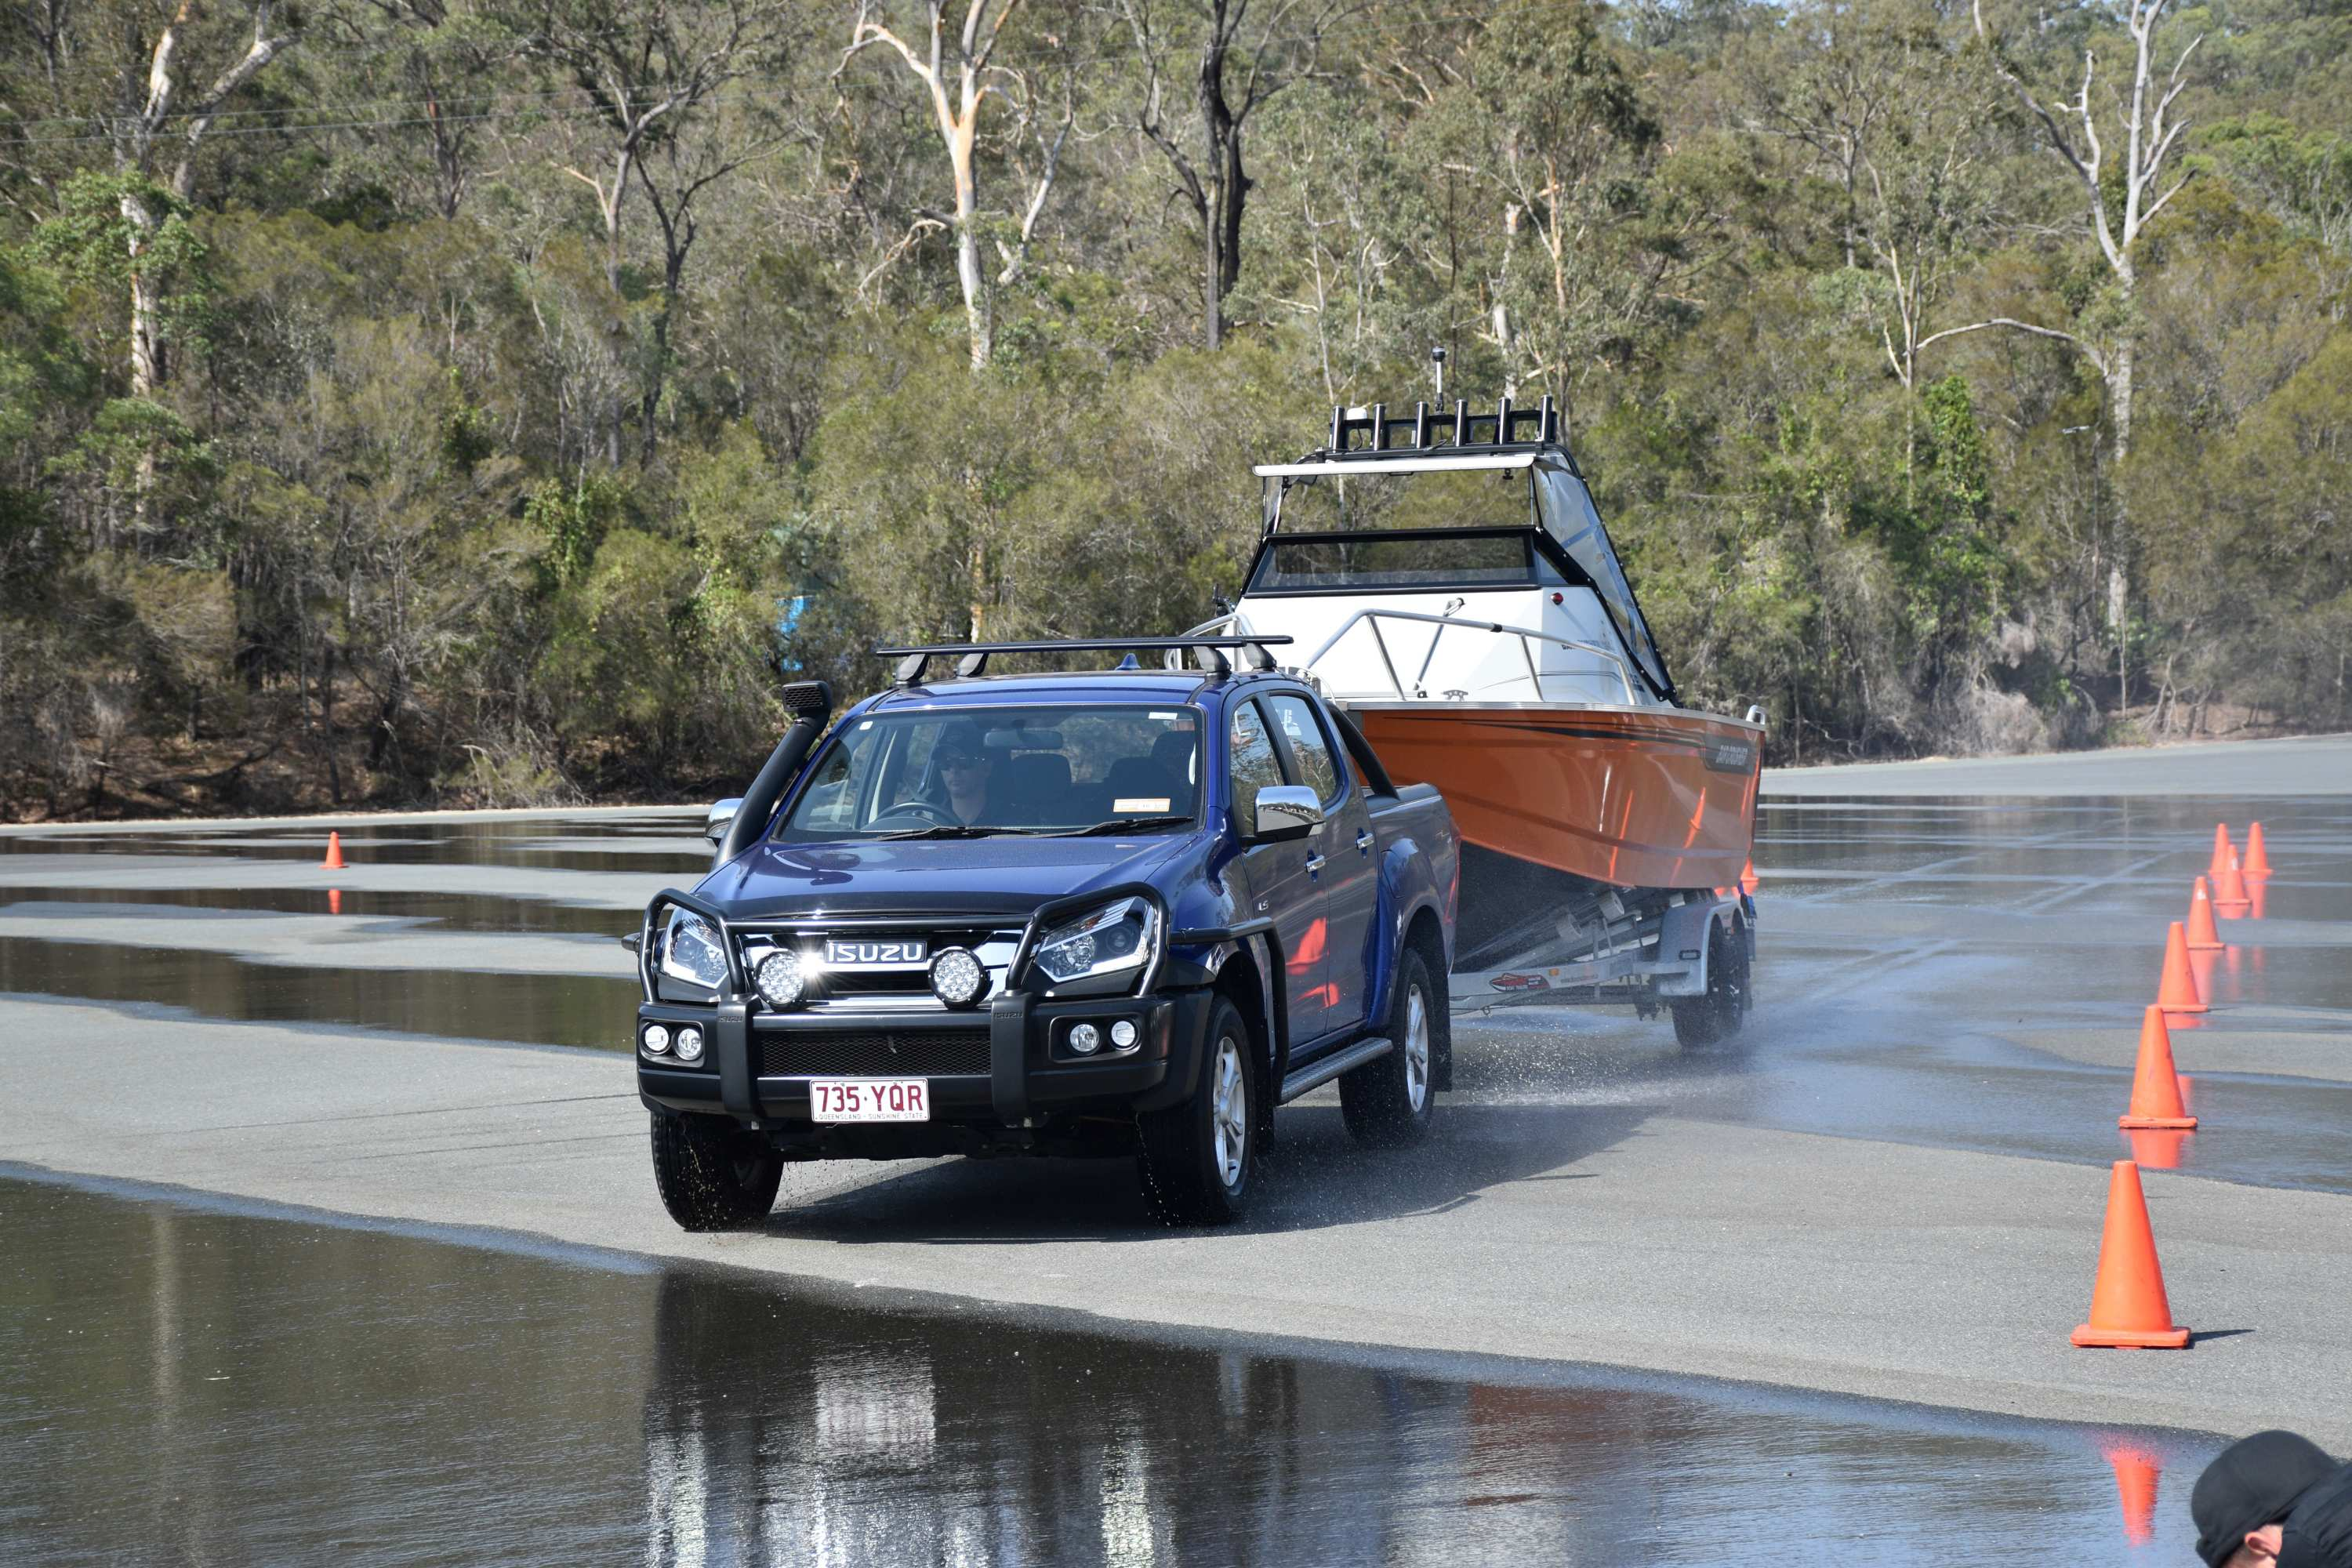 Isuzu D-MAX and MU-X drivers across the country actively continue to engage with Australia's only vehicle manufacturer initiative of its kind that incorporates driver training days and extended training tours throughout the year—further enabling Isuzu owners to Go Their Own Way under the guidance of accredited 4x4 instructors.